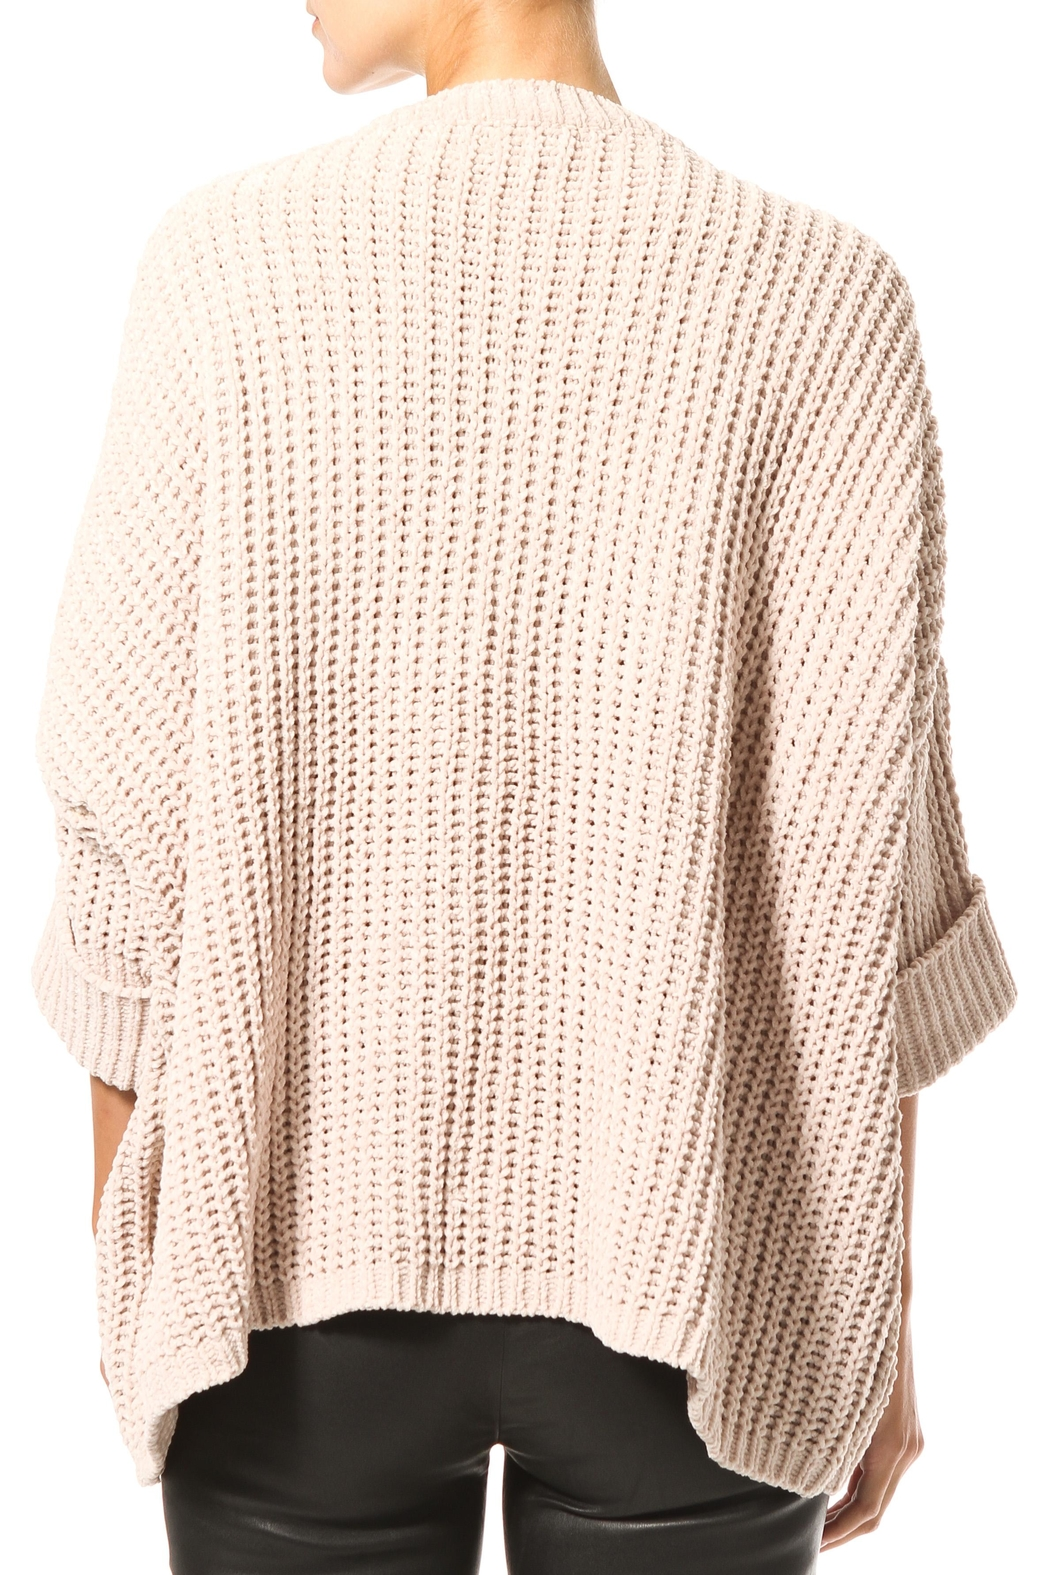 Madonna & Co Chenille Sweater - Side Cropped Image